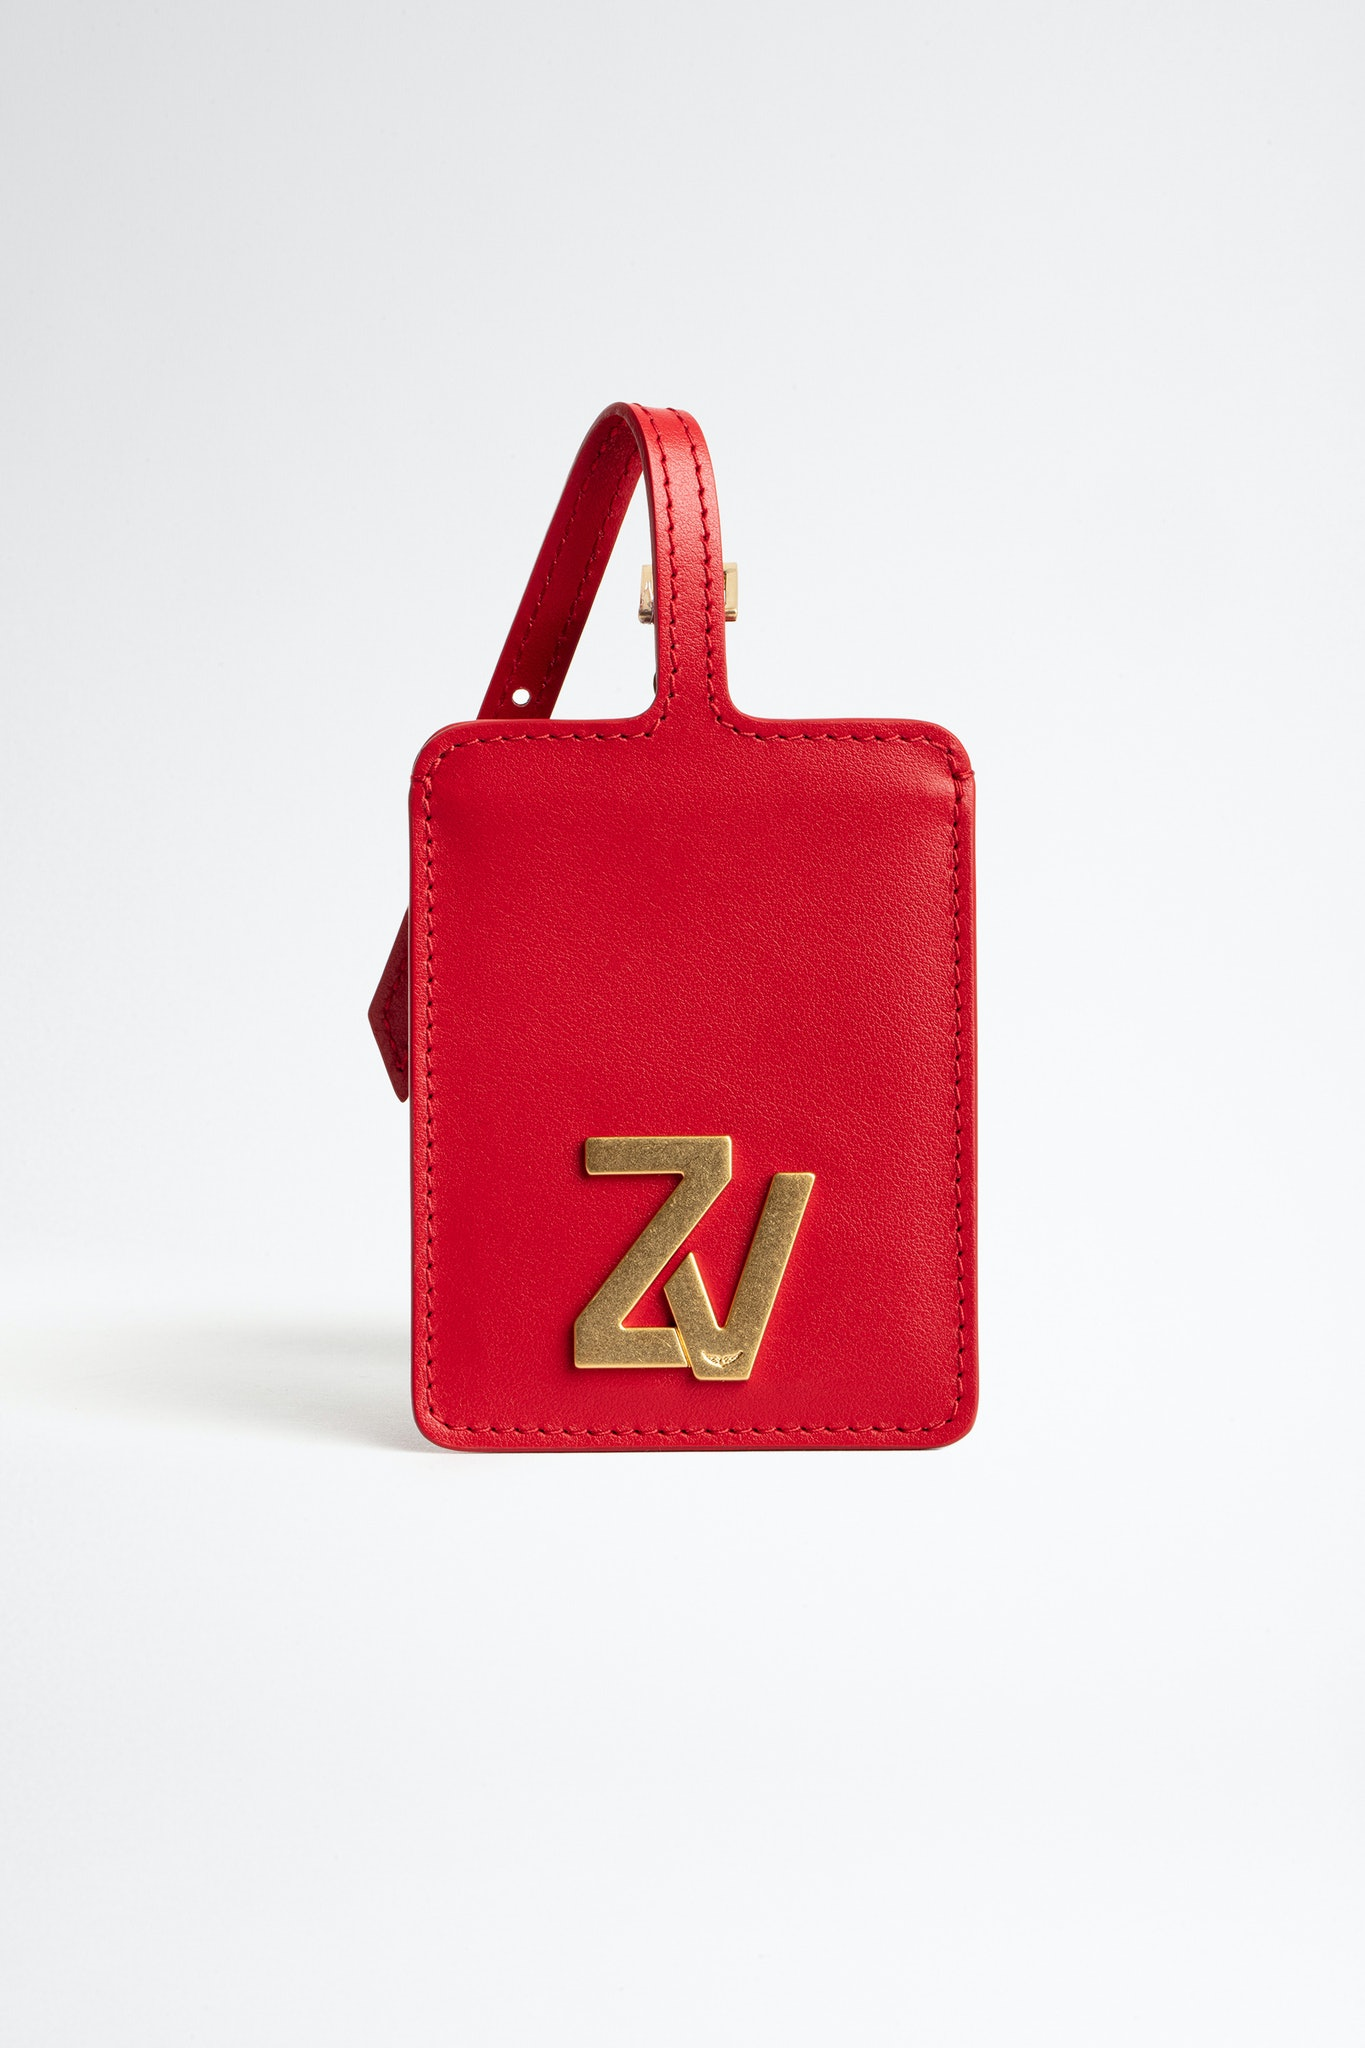 ZV Initiale Le Luggage luggage tag